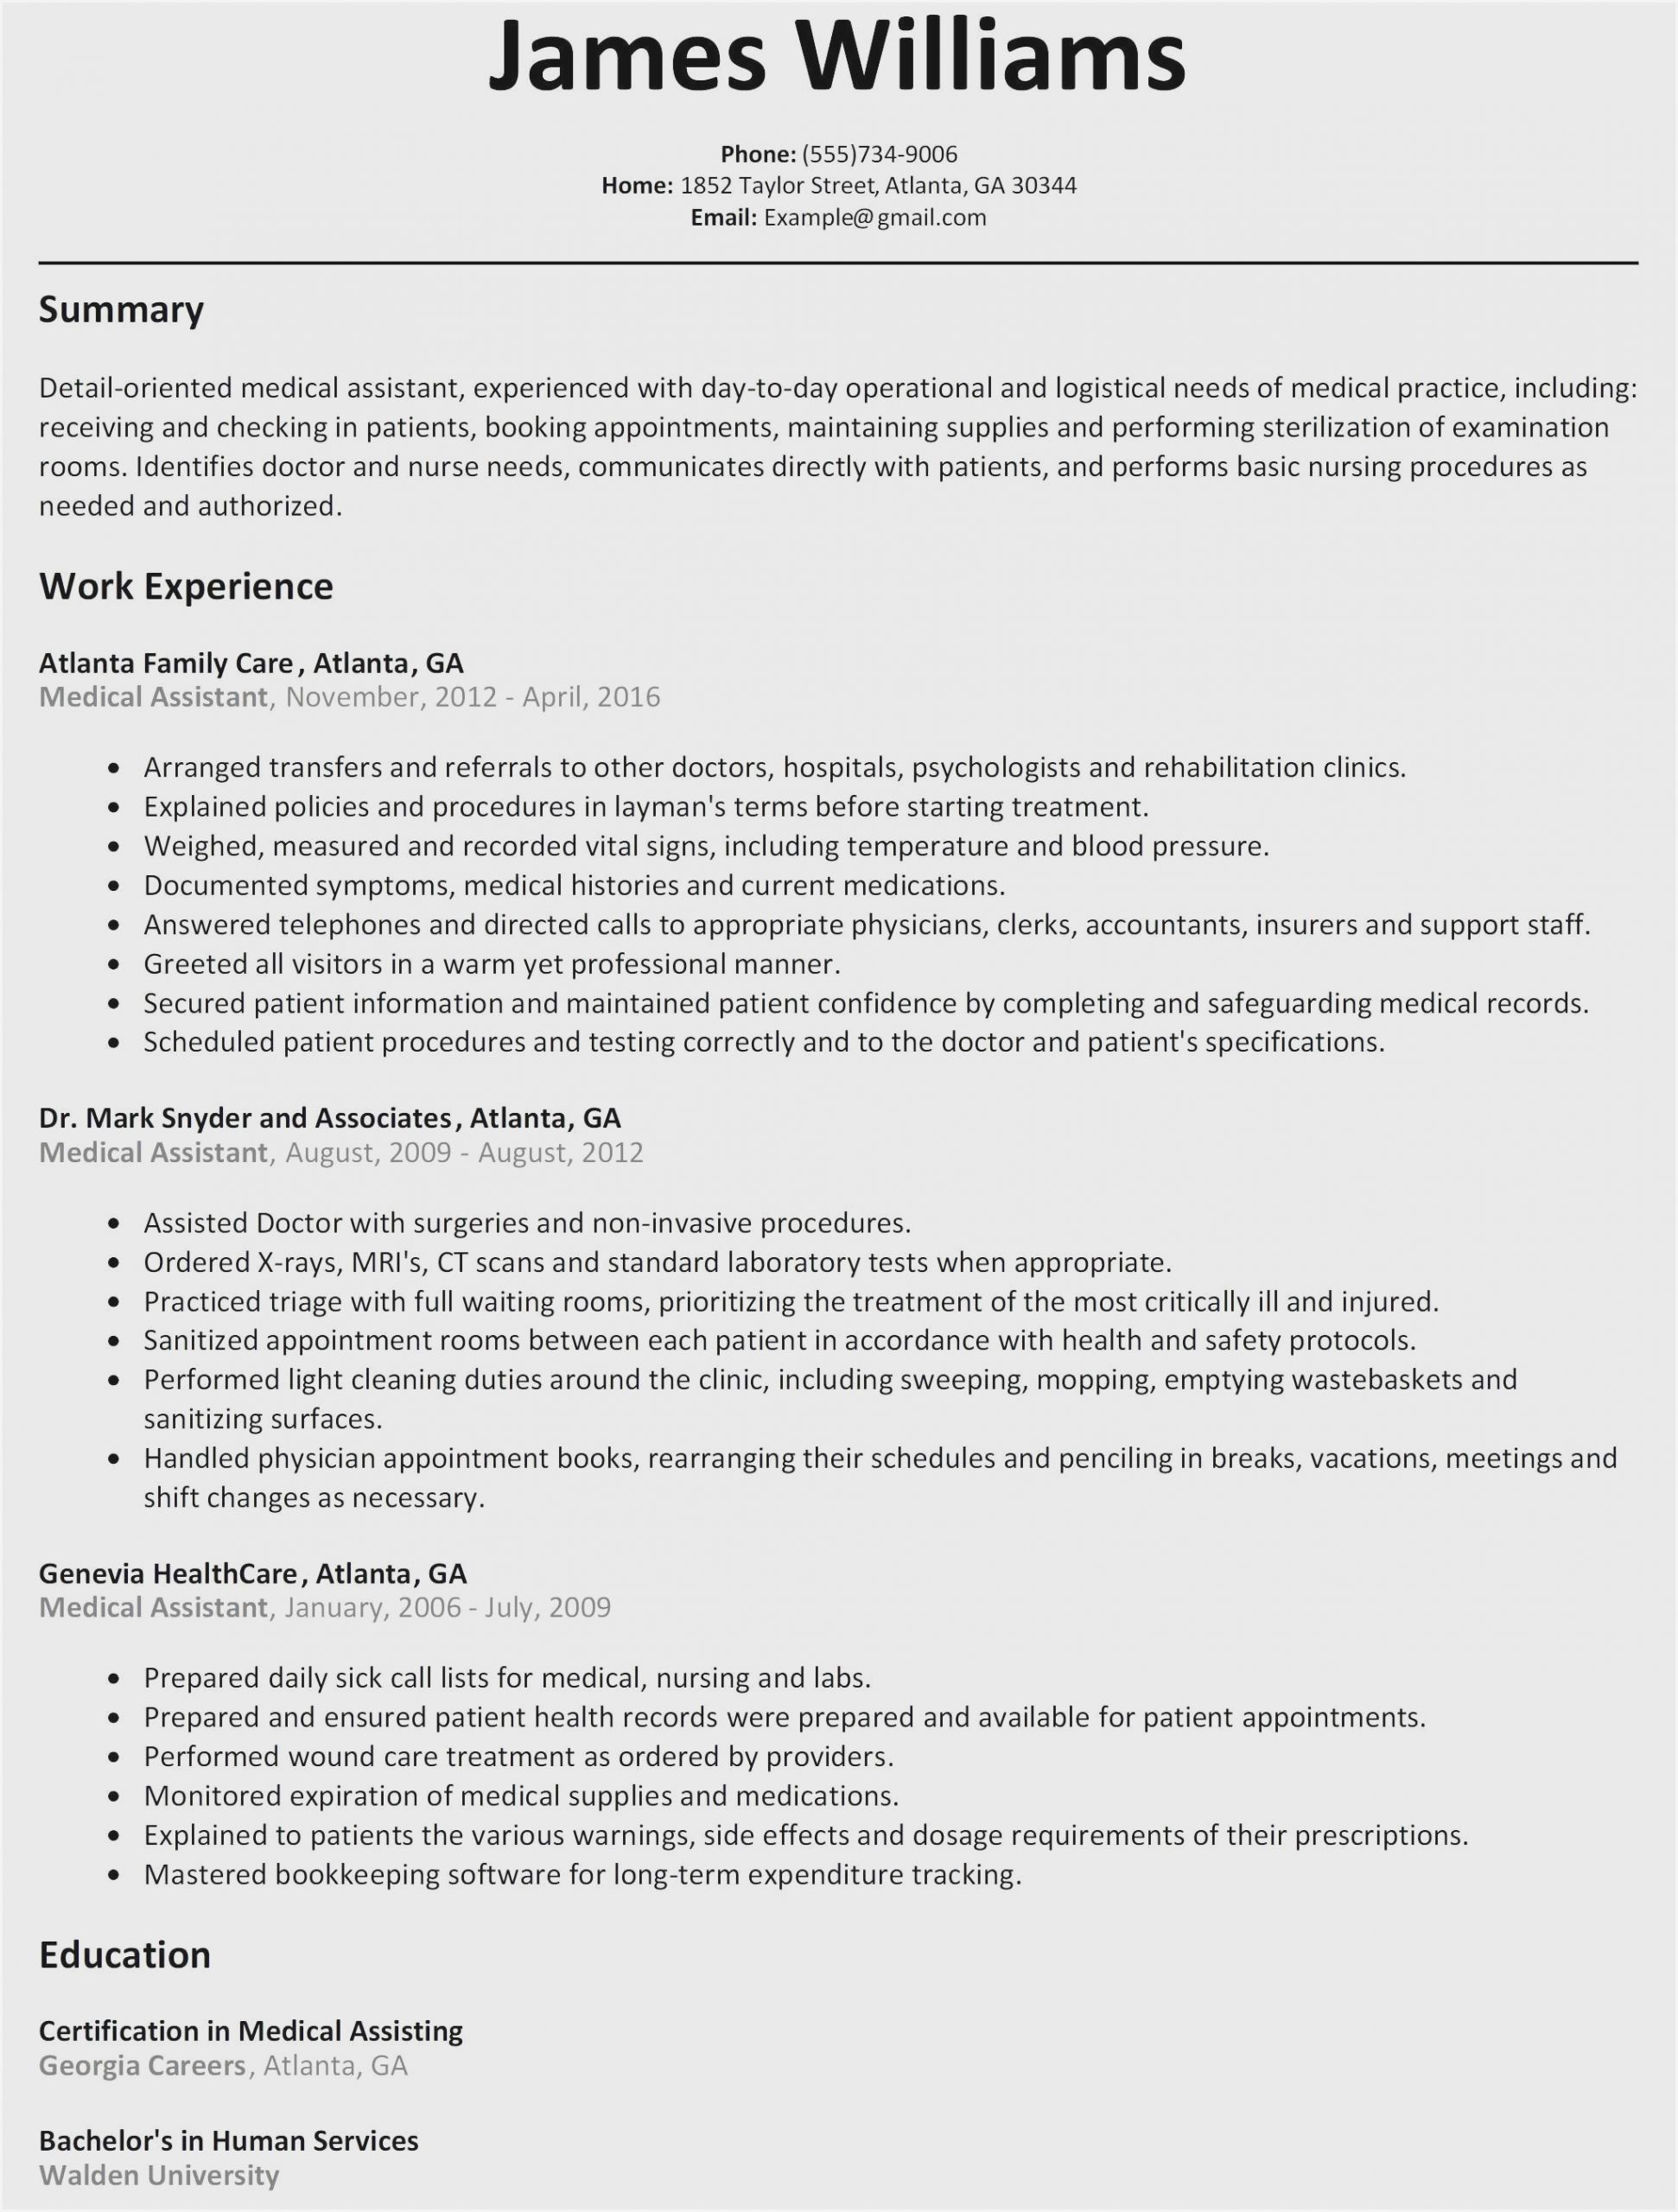 accountant resume sample free professional summary scaled medical records med surg rn Resume Professional Summary Accountant Resume